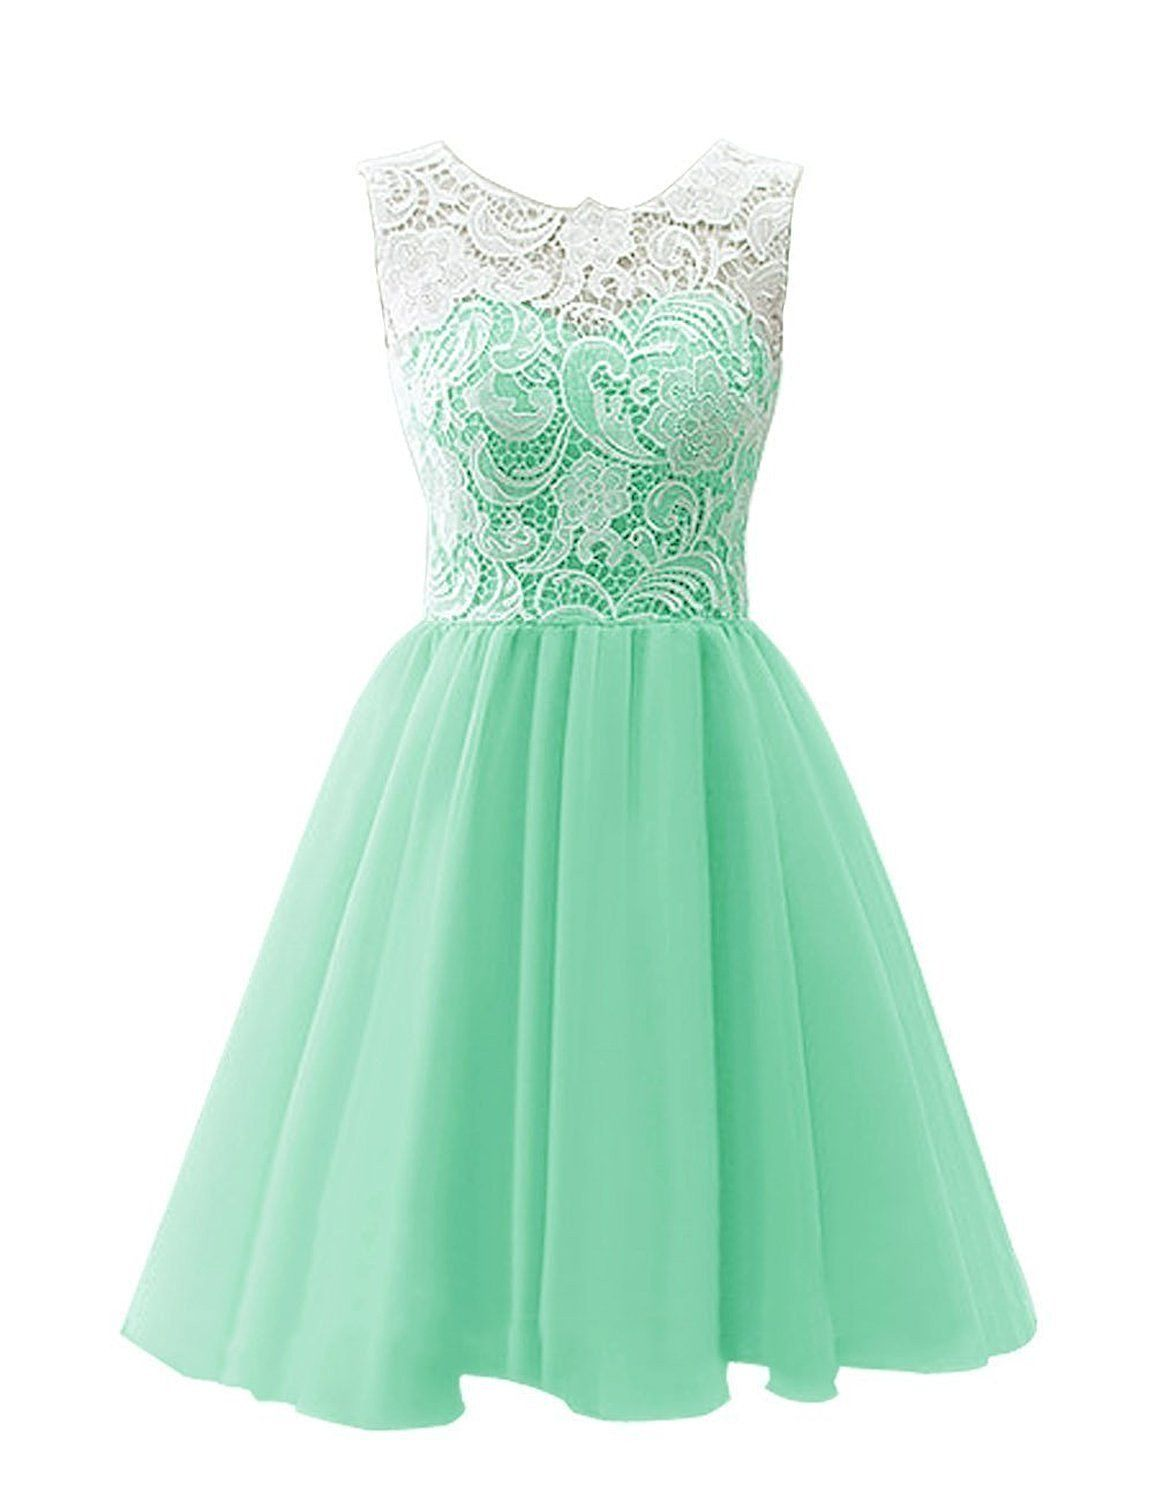 Flower Girl / Adult Ball Gown Lace Short Prom Dress | Short prom ...